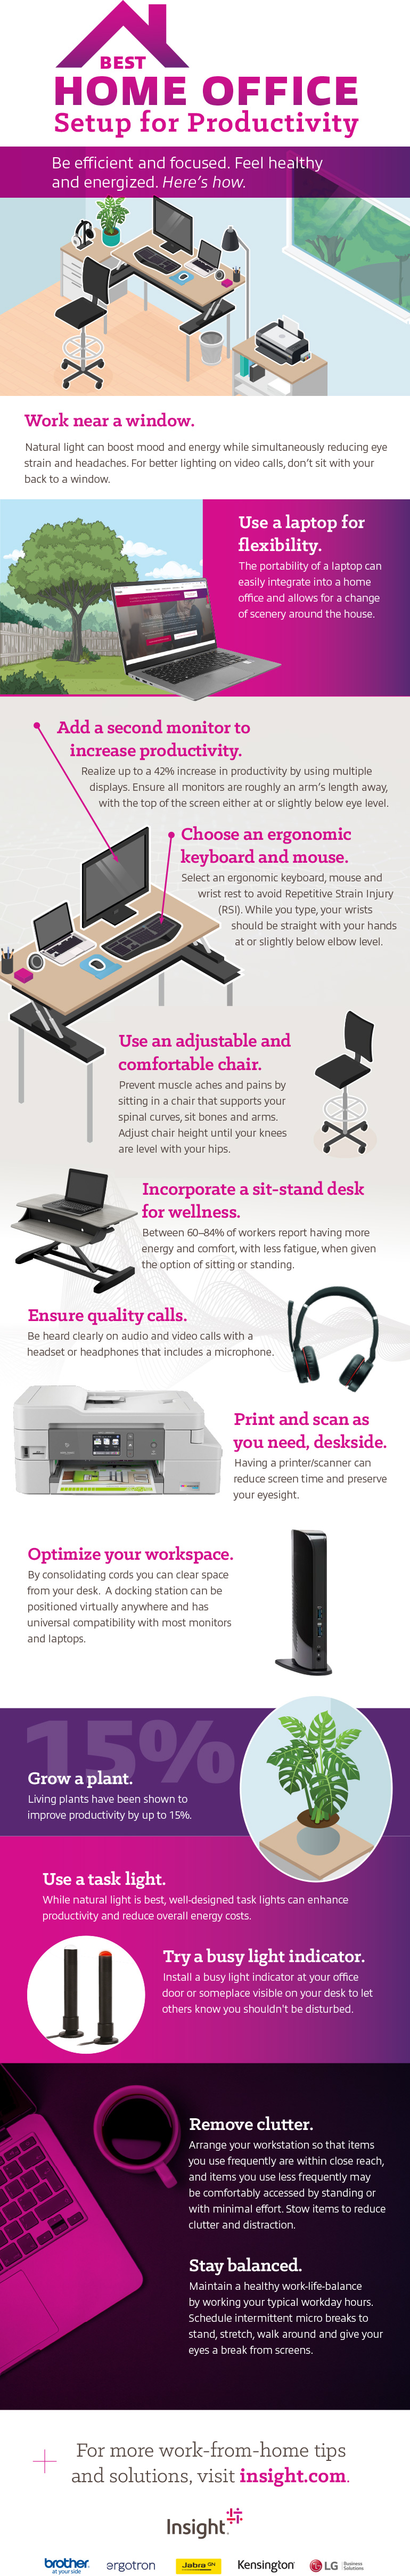 Infographic displaying how to set up your home office for success. Translated below.